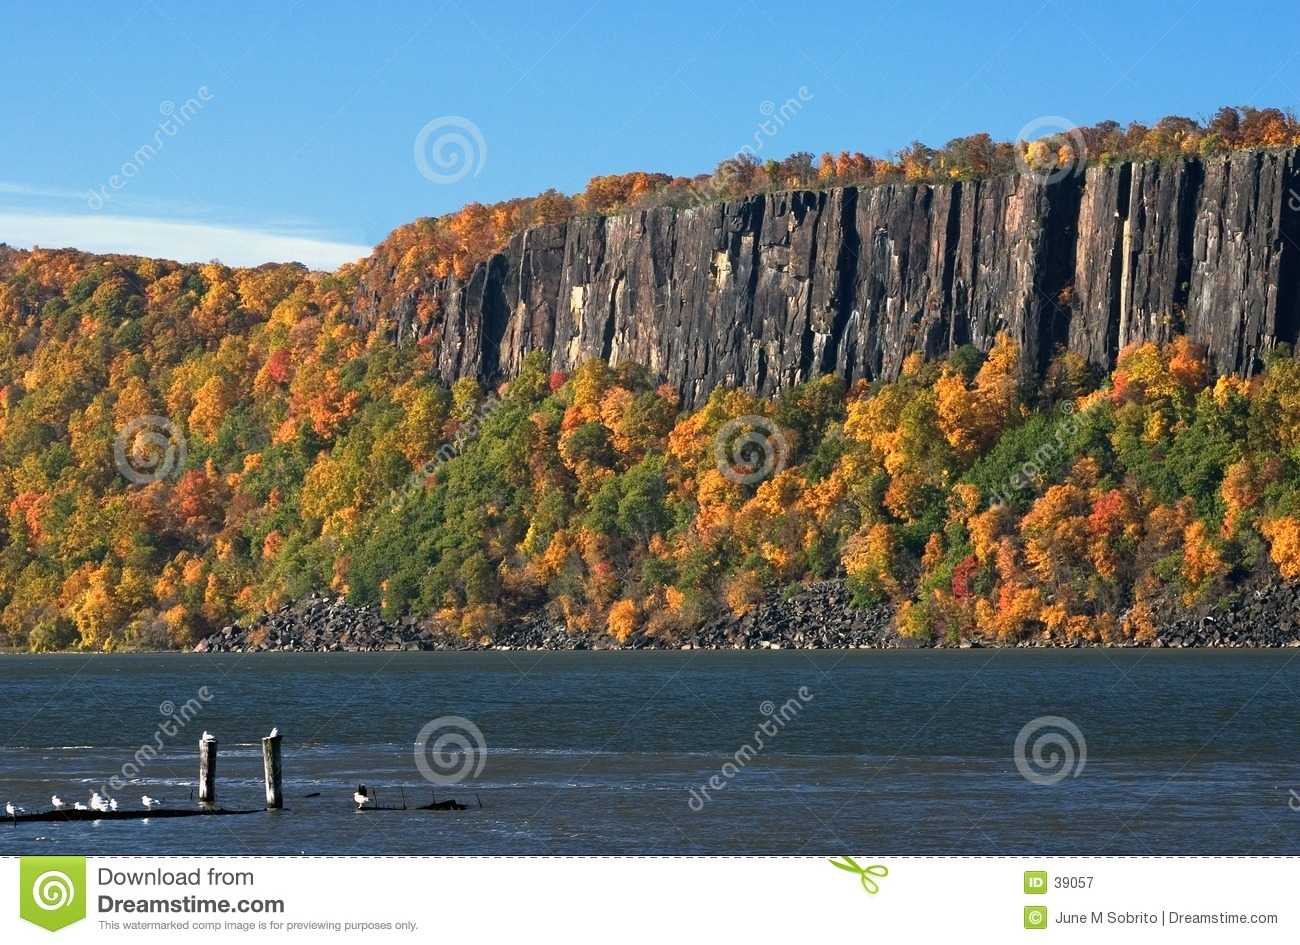 Download The Palisades stock image. Image of trees, river, hudson - 39057